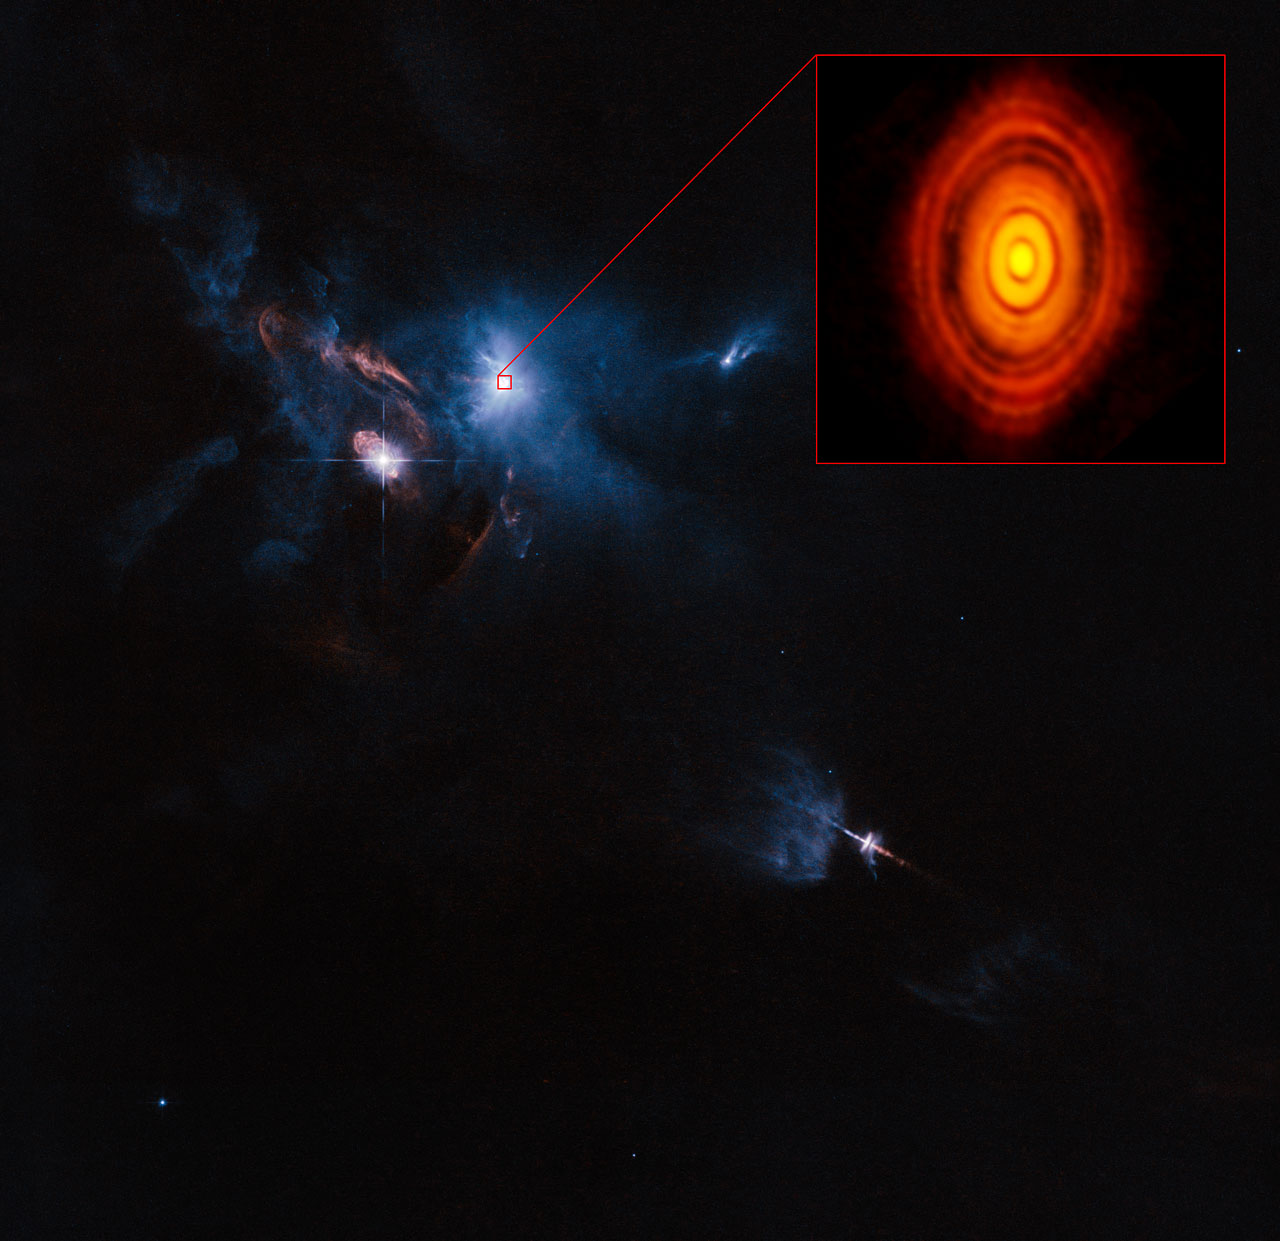 This is a composite image of the young star HL Tauri and its surroundings using data from ALMA (enlarged in box at upper right) and the NASA/ESA Hubble Space Telescope (rest of the picture). This is the first ALMA image where the image sharpness exceeds that normally attained with Hubble. Credit: ALMA (ESO/NAOJ/NRAO), ESA/Hubble and NASA Acknowledgement: Judy Schmidt